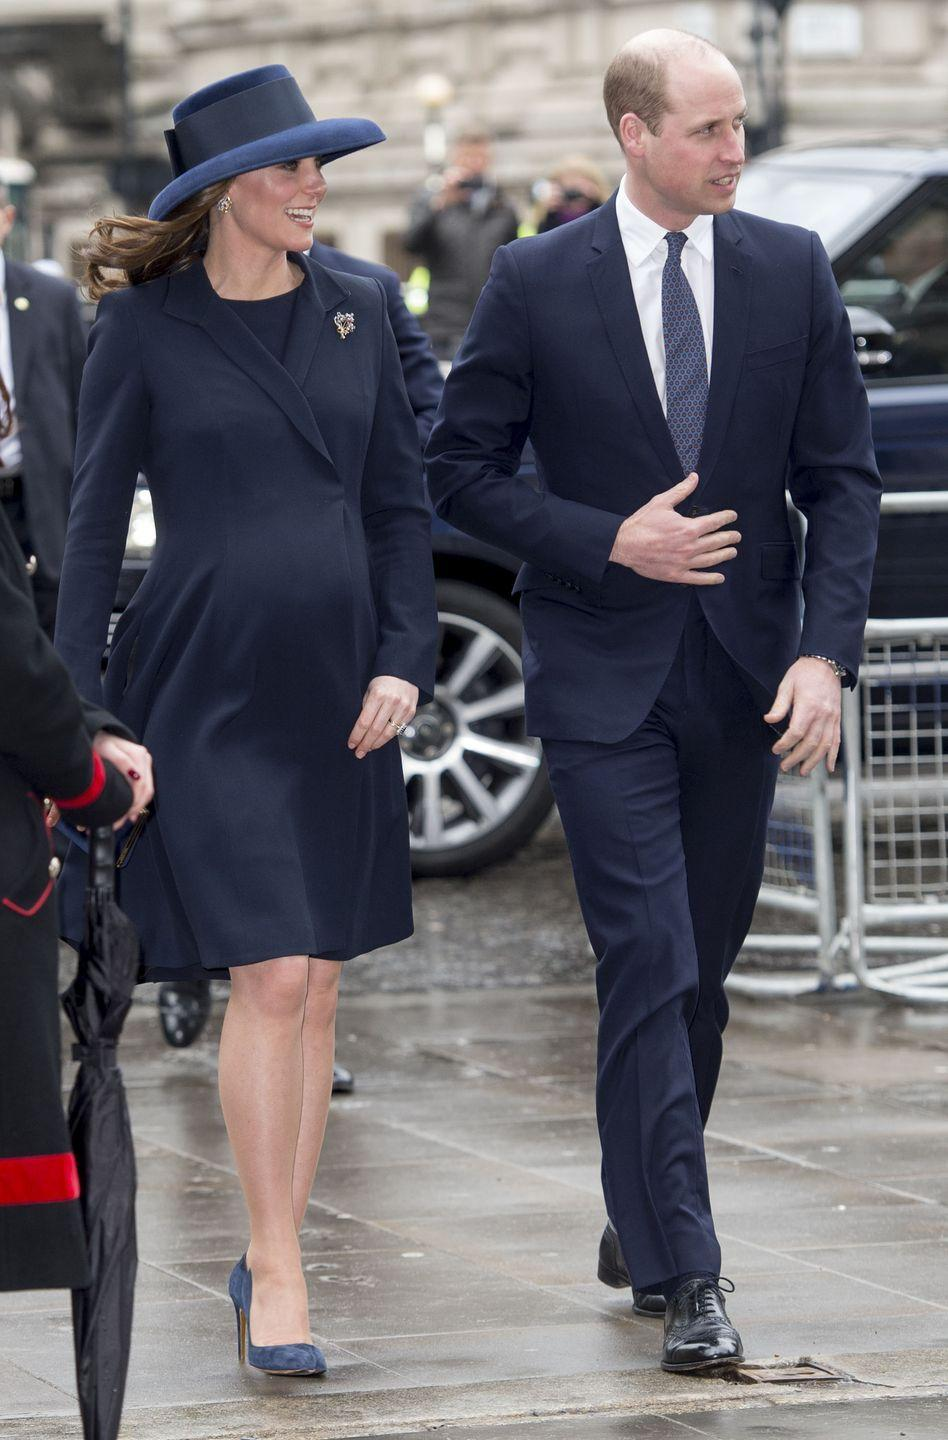 "<p>For the Commonwealth Day service, Duchess Kate chose a dark blue Beulah London dress and coat set paired with a Lock and Co hat. She and her soon-to-be sister-in-law Meghan Markle were both sporting <a href=""https://www.townandcountrymag.com/society/tradition/a19407133/meghan-markle-outfit-commonwealth-day/"" rel=""nofollow noopener"" target=""_blank"" data-ylk=""slk:navy pointy-toe pumps"" class=""link rapid-noclick-resp"">navy pointy-toe pumps</a> for the occasion. </p>"